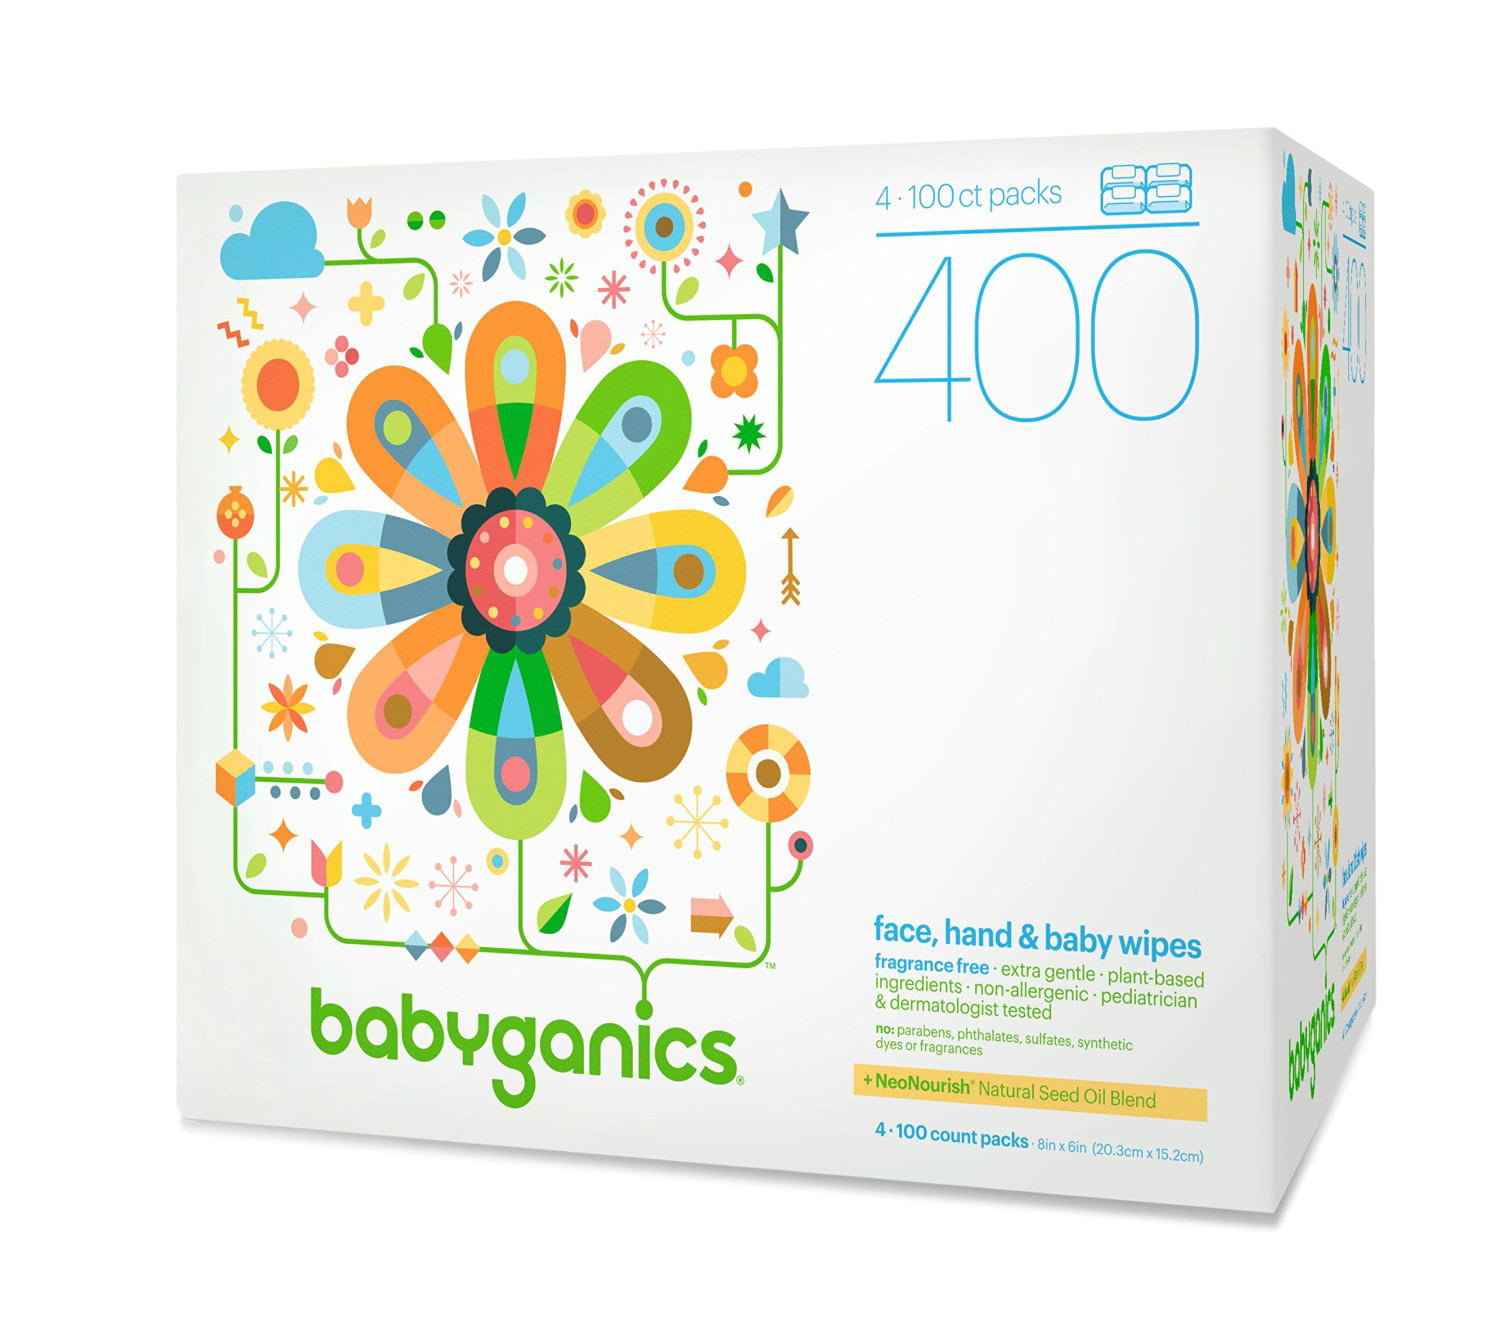 Babyganics Face, Hand & Baby Wipes, Fragrance Free, 400 Count (Contains Four 100-Count Packs) by BabyGanics